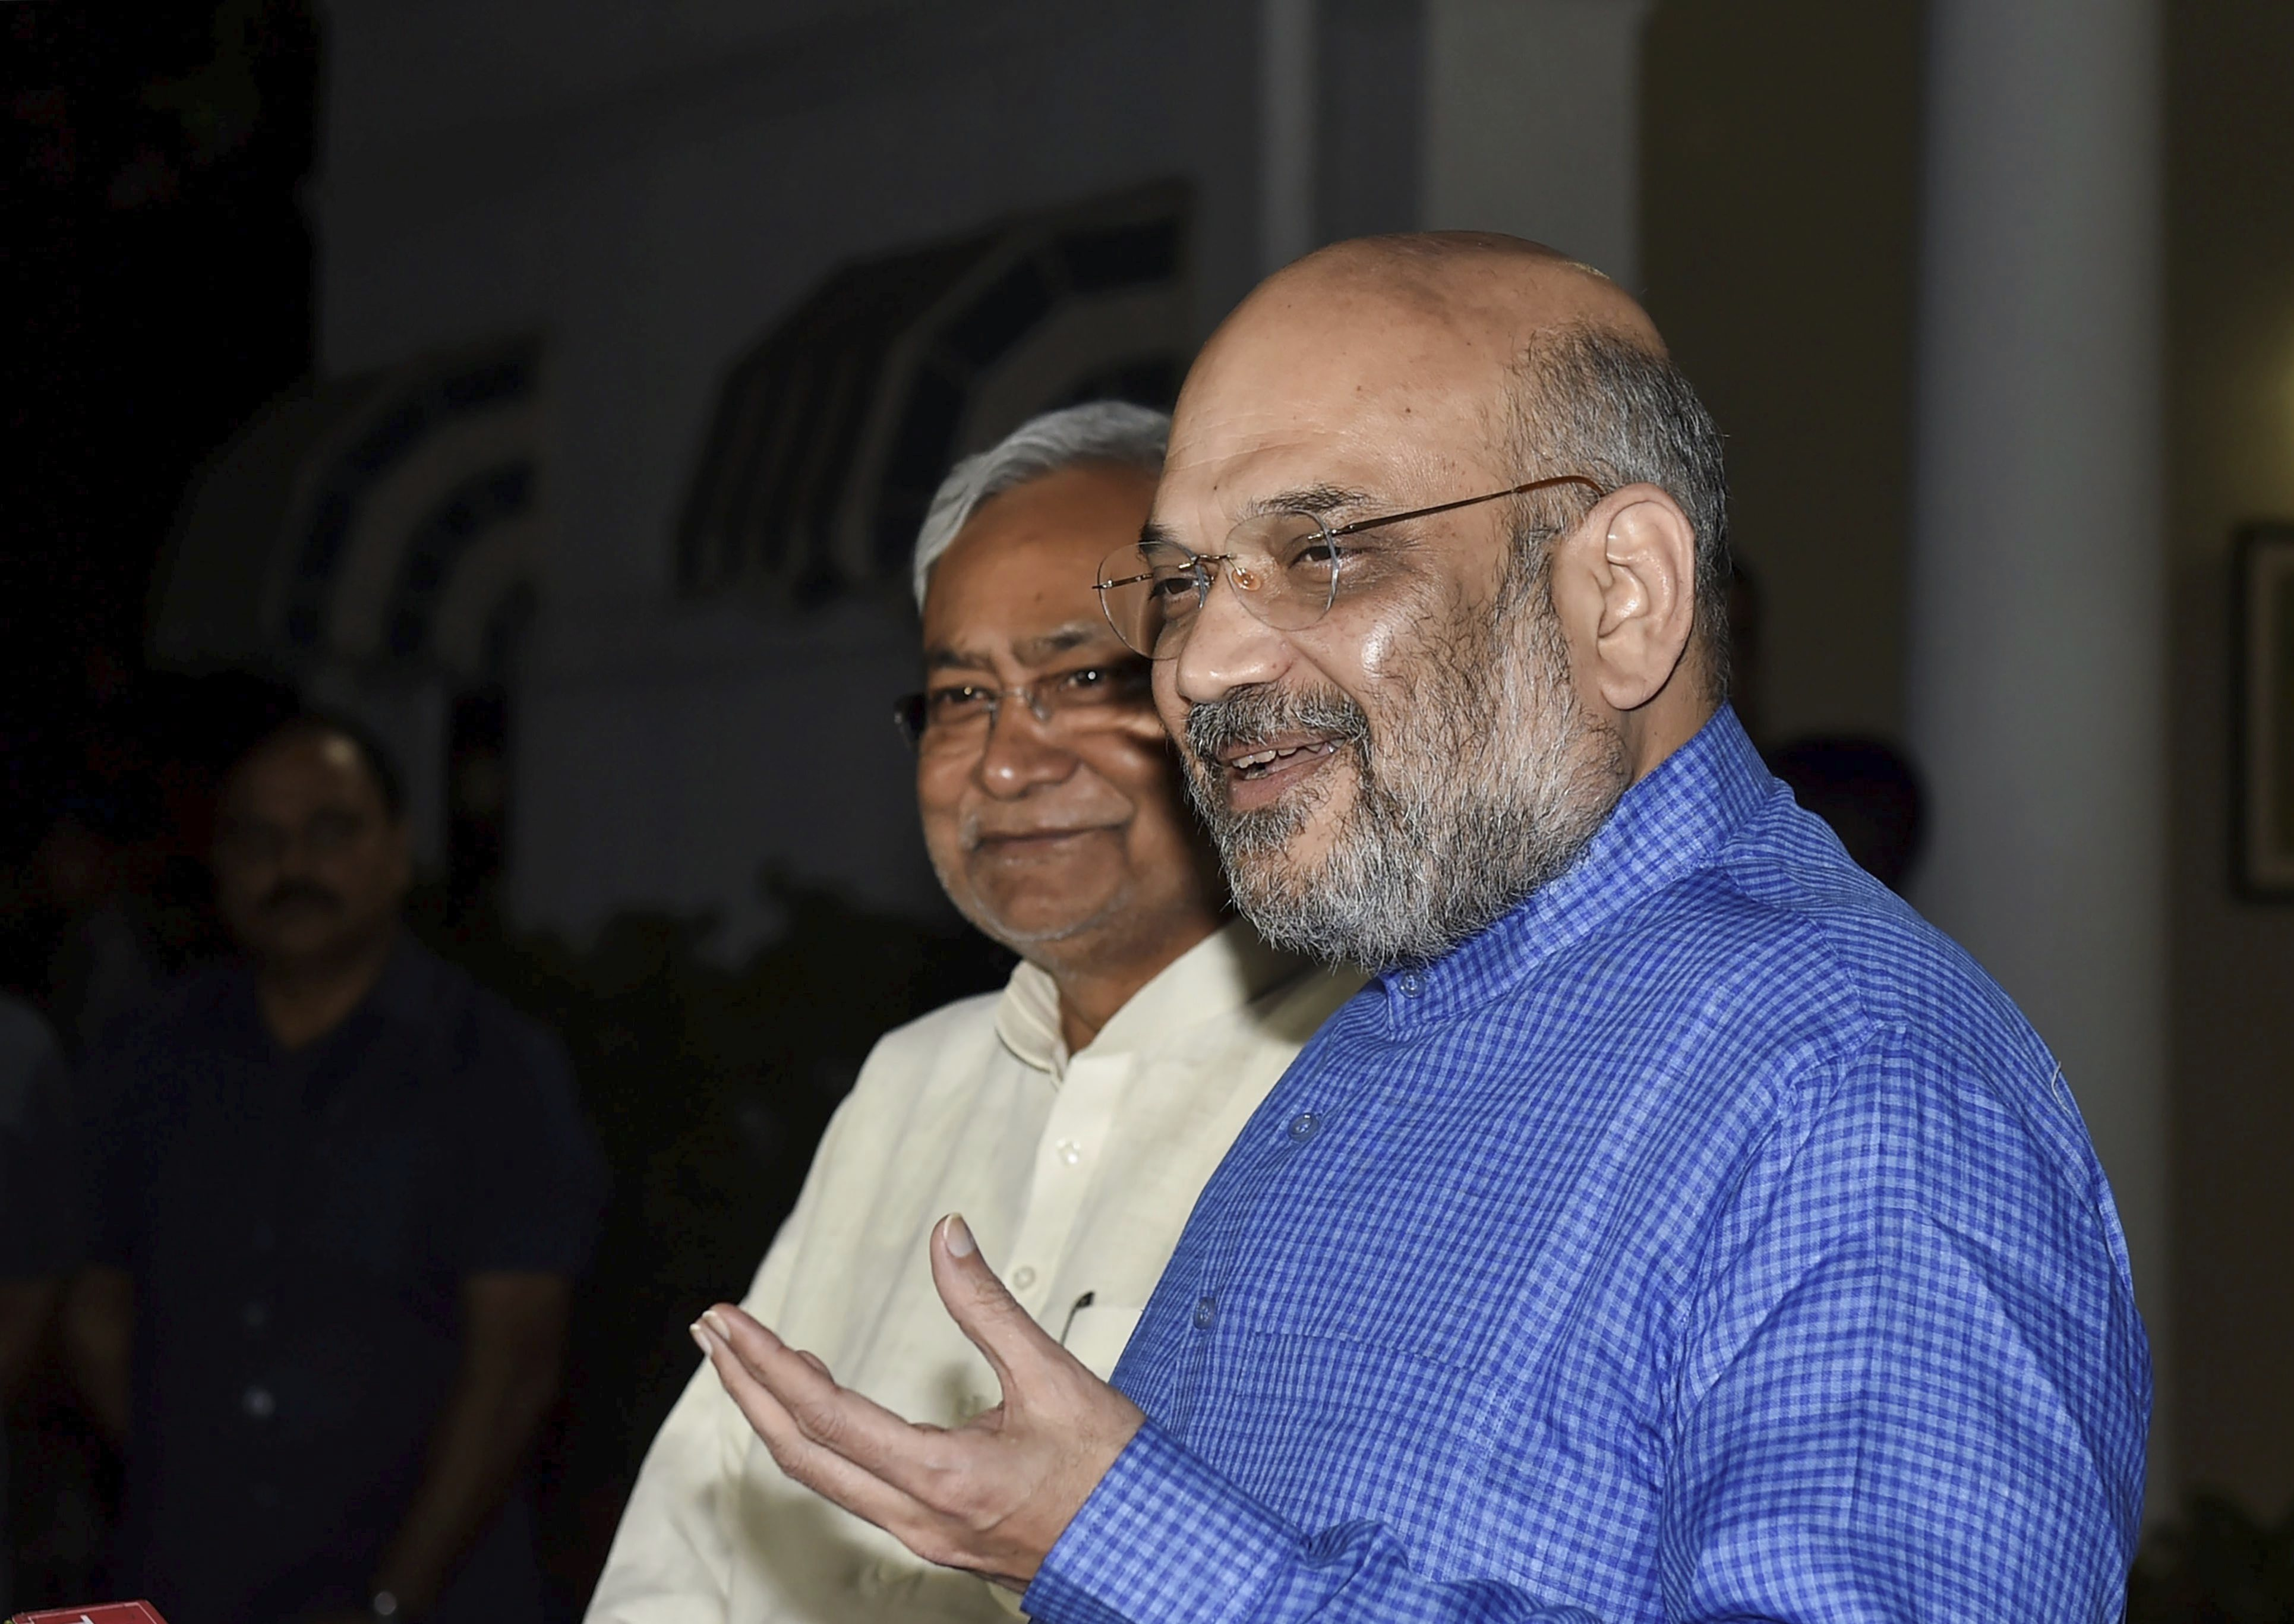 BJP President Amit Shah and Bihar Chief Minister Nitish Kumar interact with the media at the former's residence in New Delhi - PTI